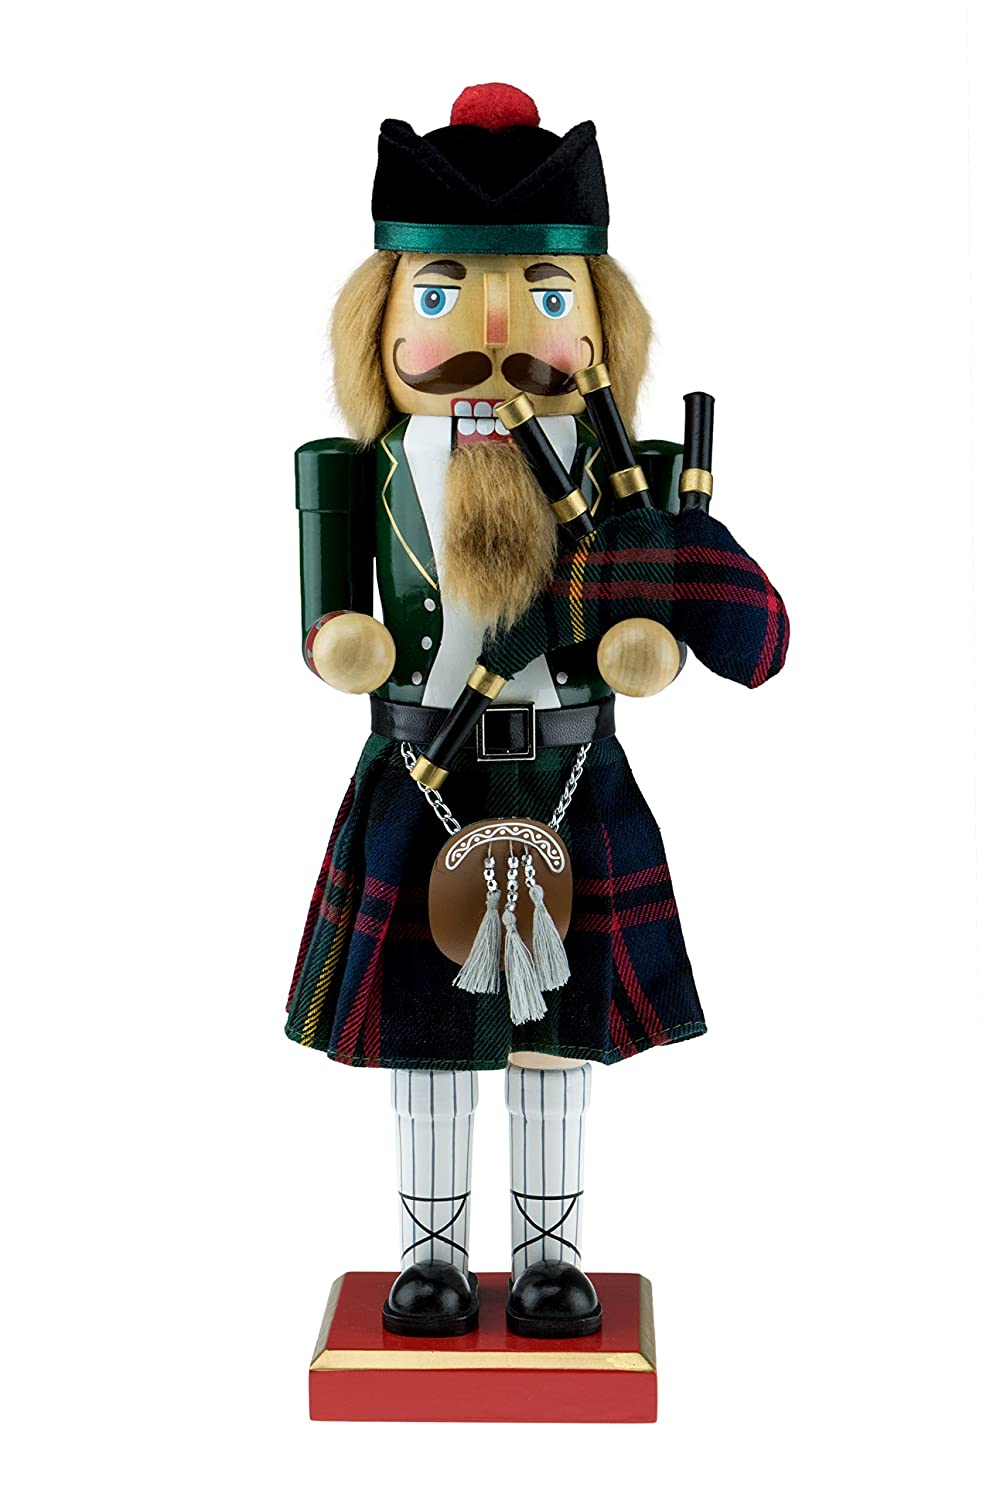 "Scottish Soldier Nutcracker by Clever Creations | Wearing Scottish Outfit with Bag Pipes | Festive Collectable Christmas Decor | Perfect for Shelves and Tables | 100% Wood | 14"" Tall with Bagpipes Clever Chef"